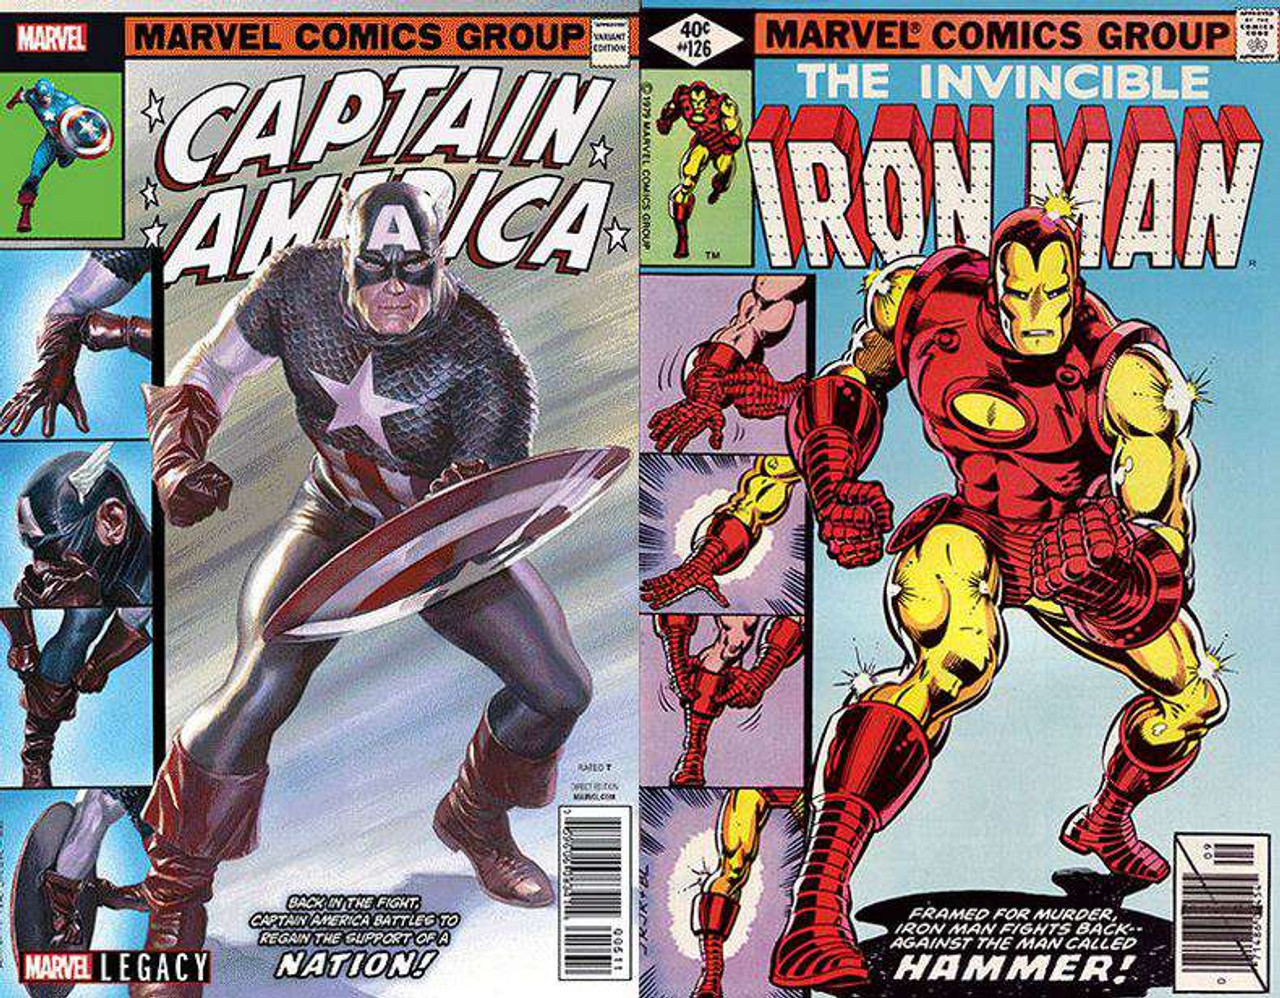 Your Avengers captain america comic book covers authoritative